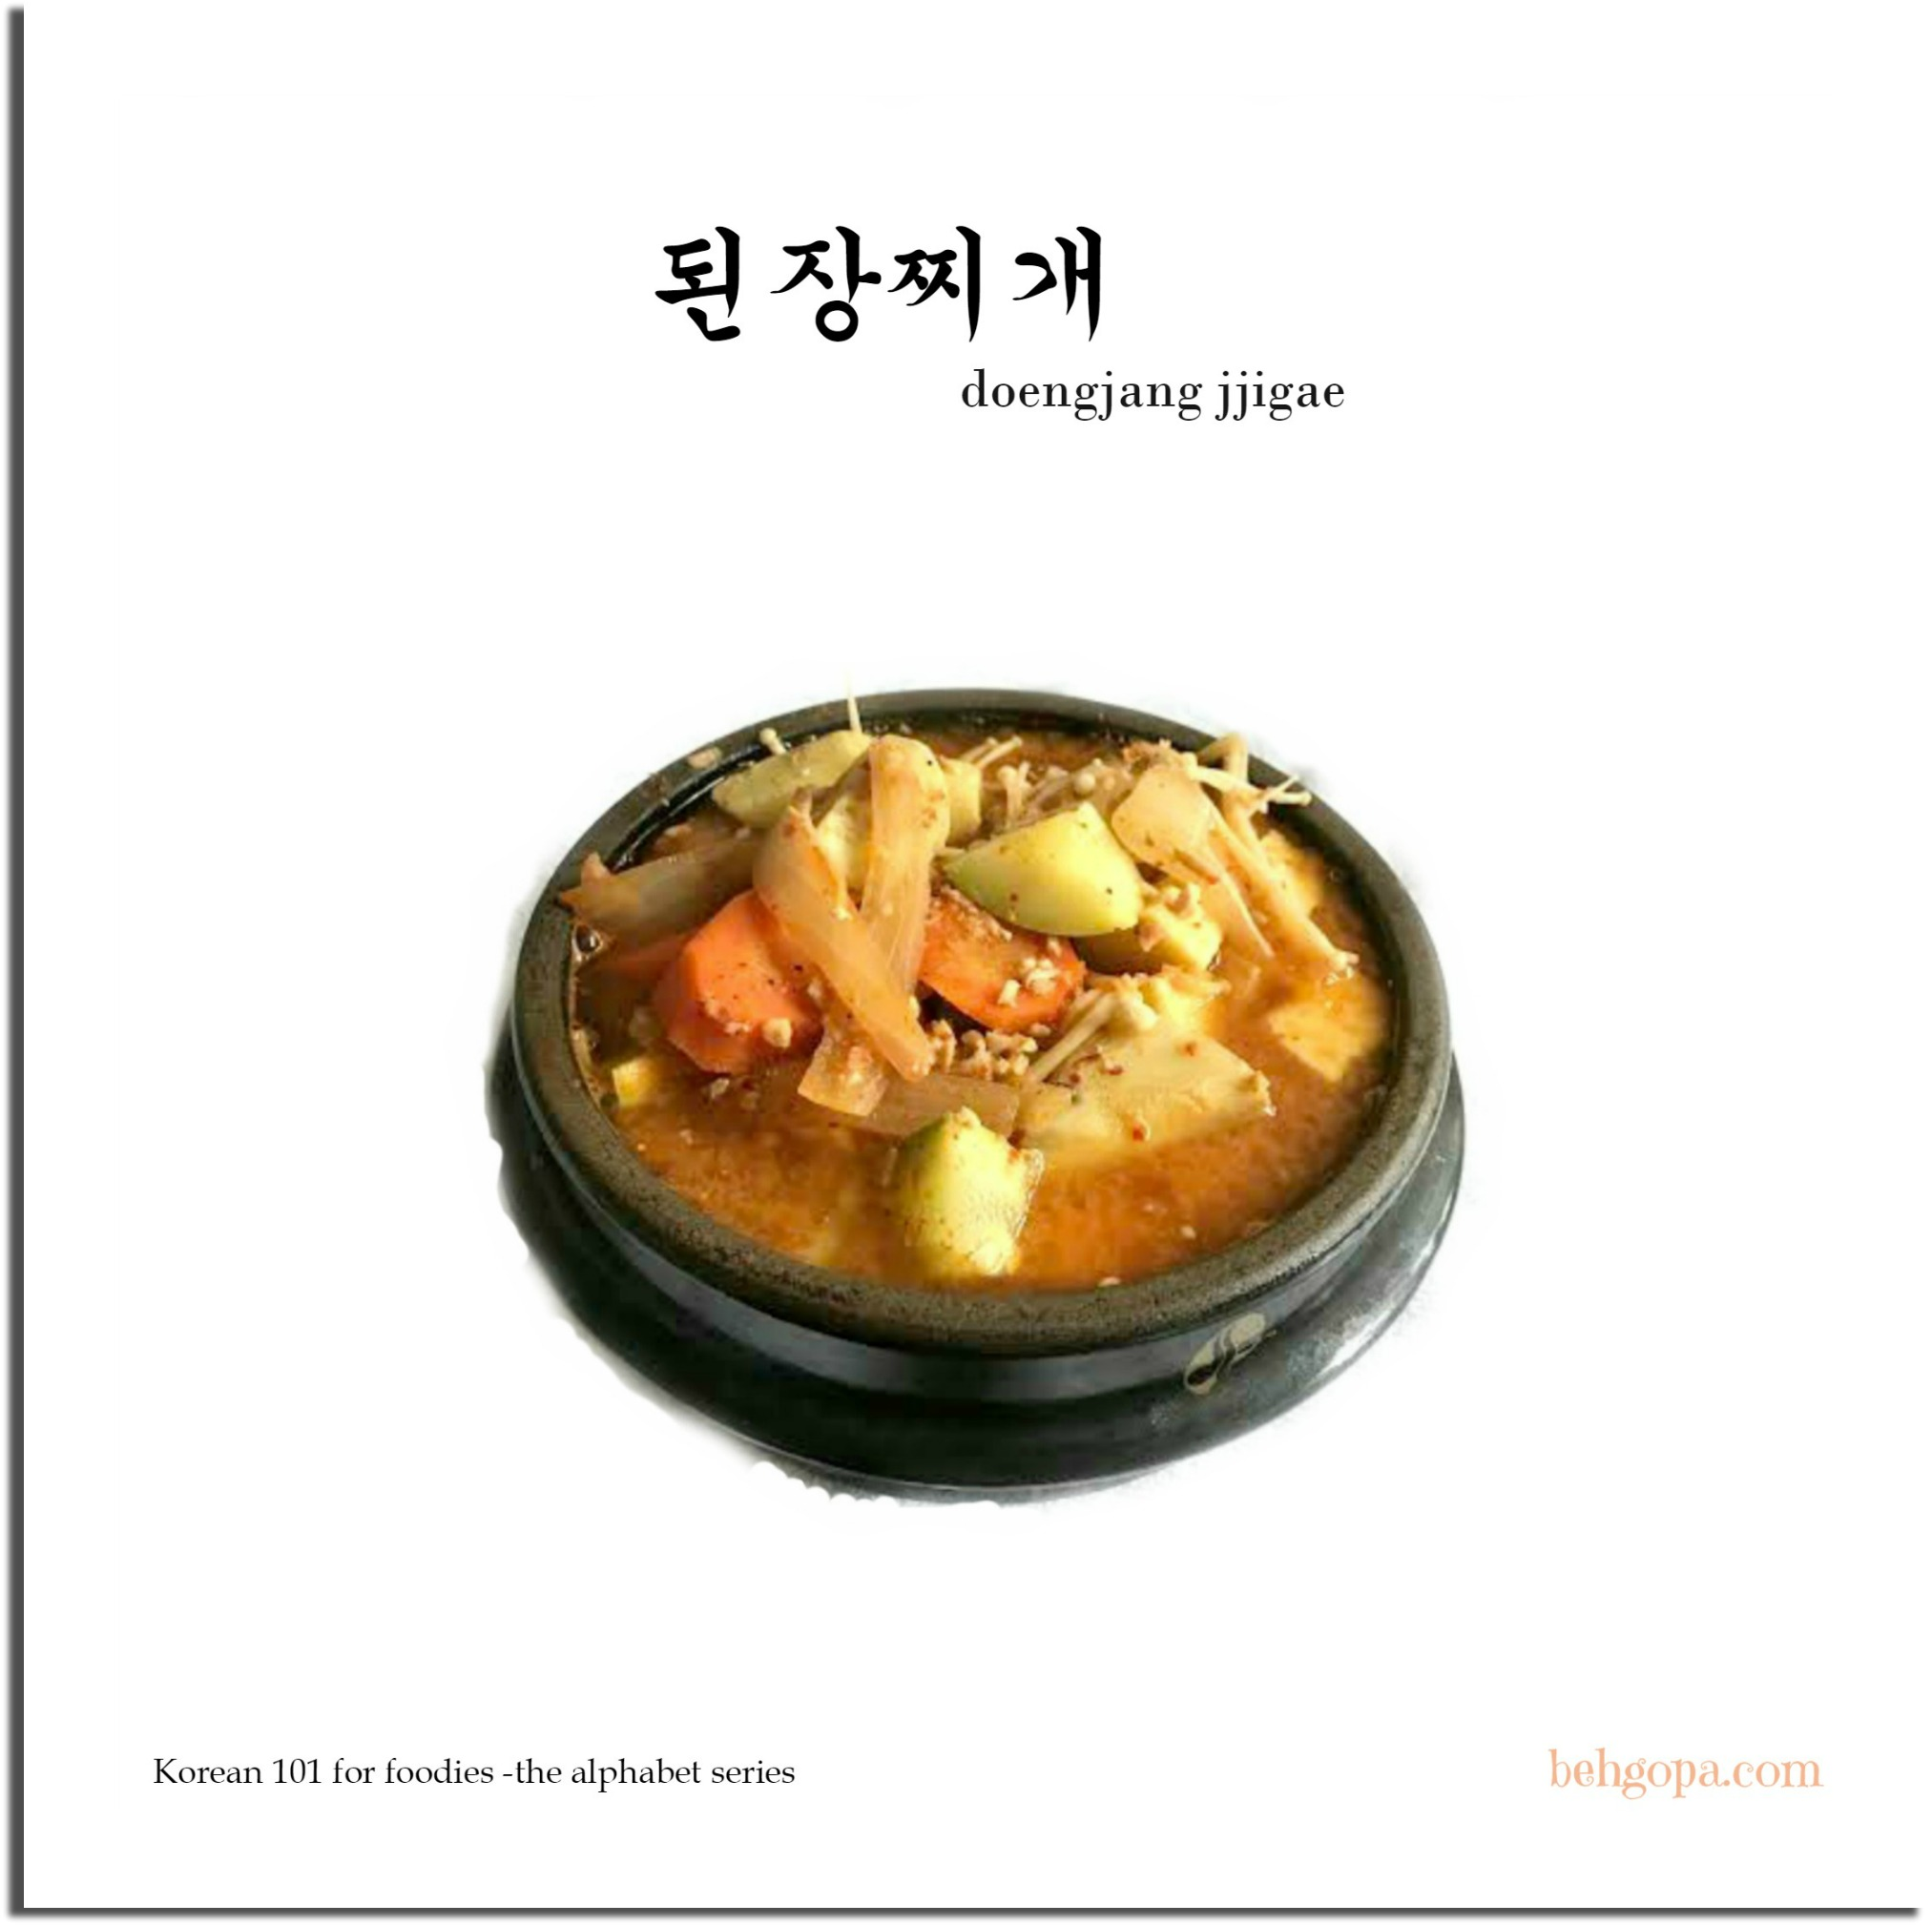 doenjang jjigae (ㄷ is for 된장) Korean 101 for foodies - the alphabet series